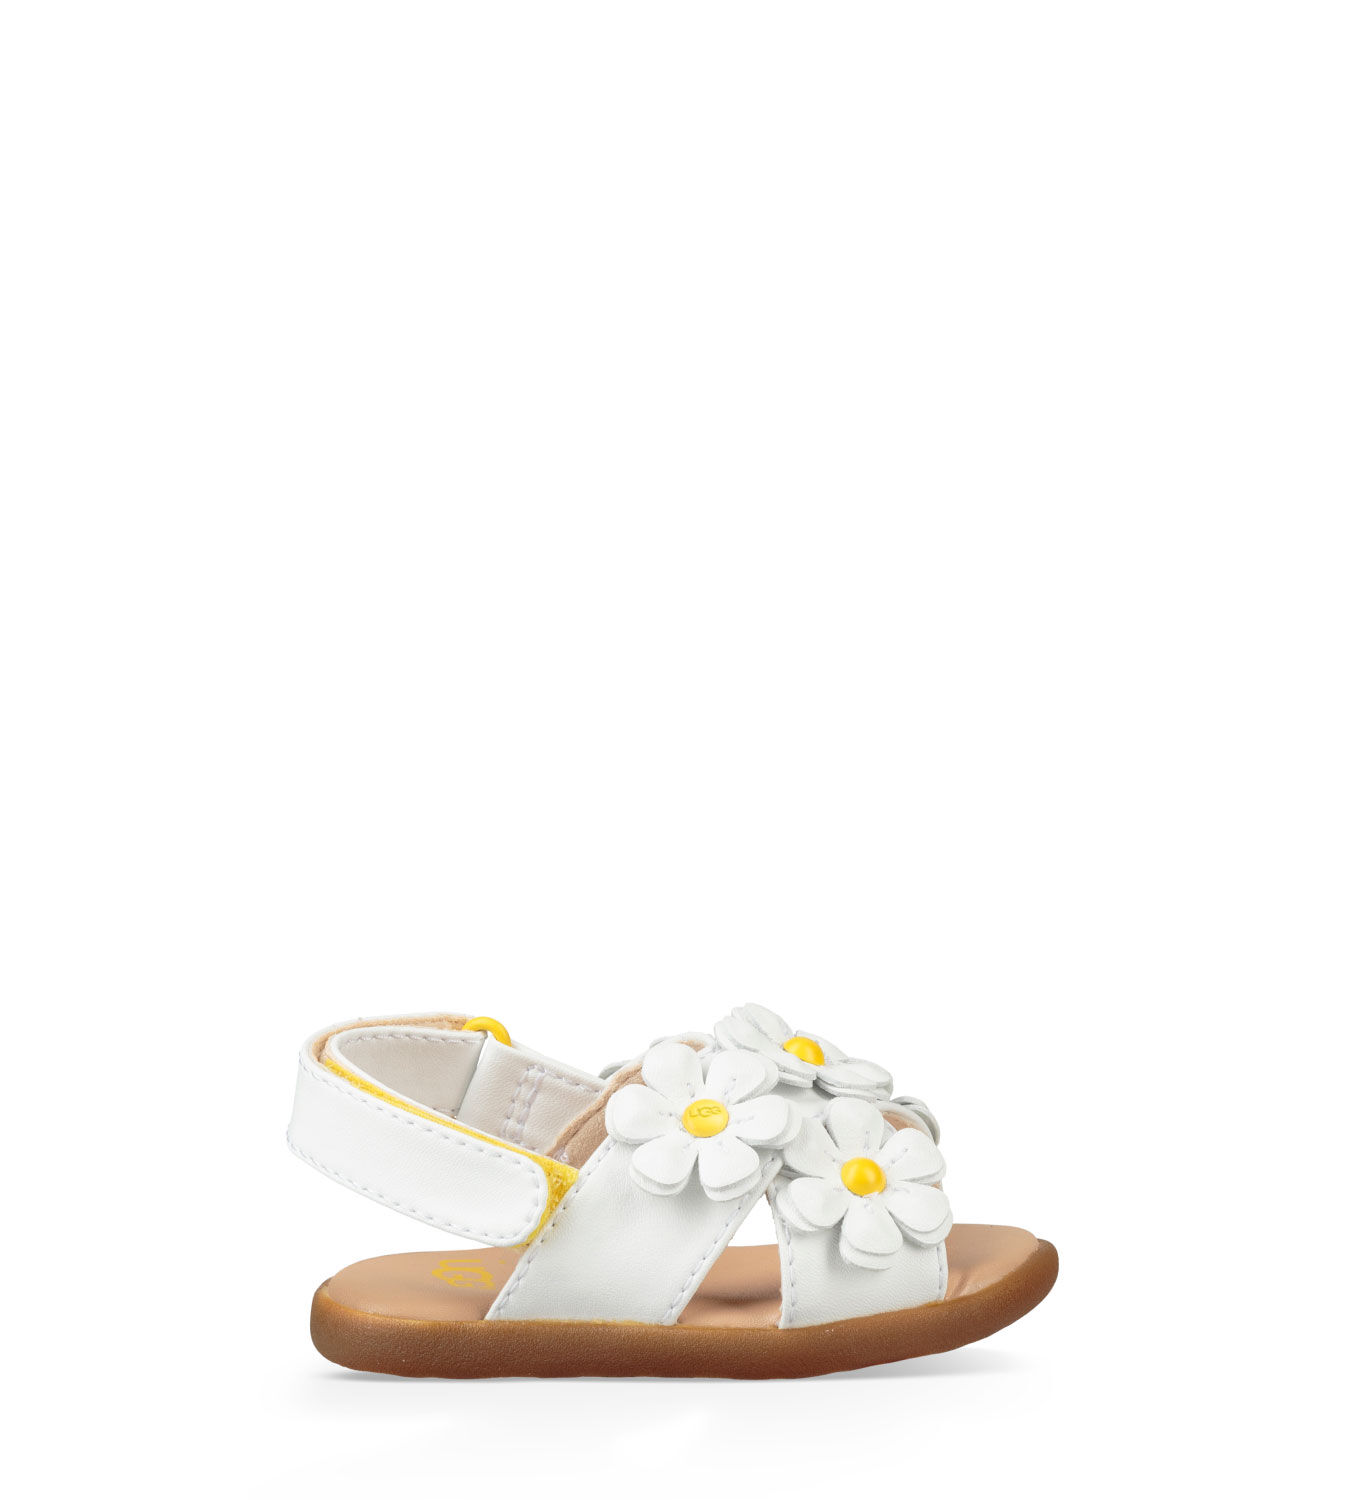 uggs sandals for toddlers nz